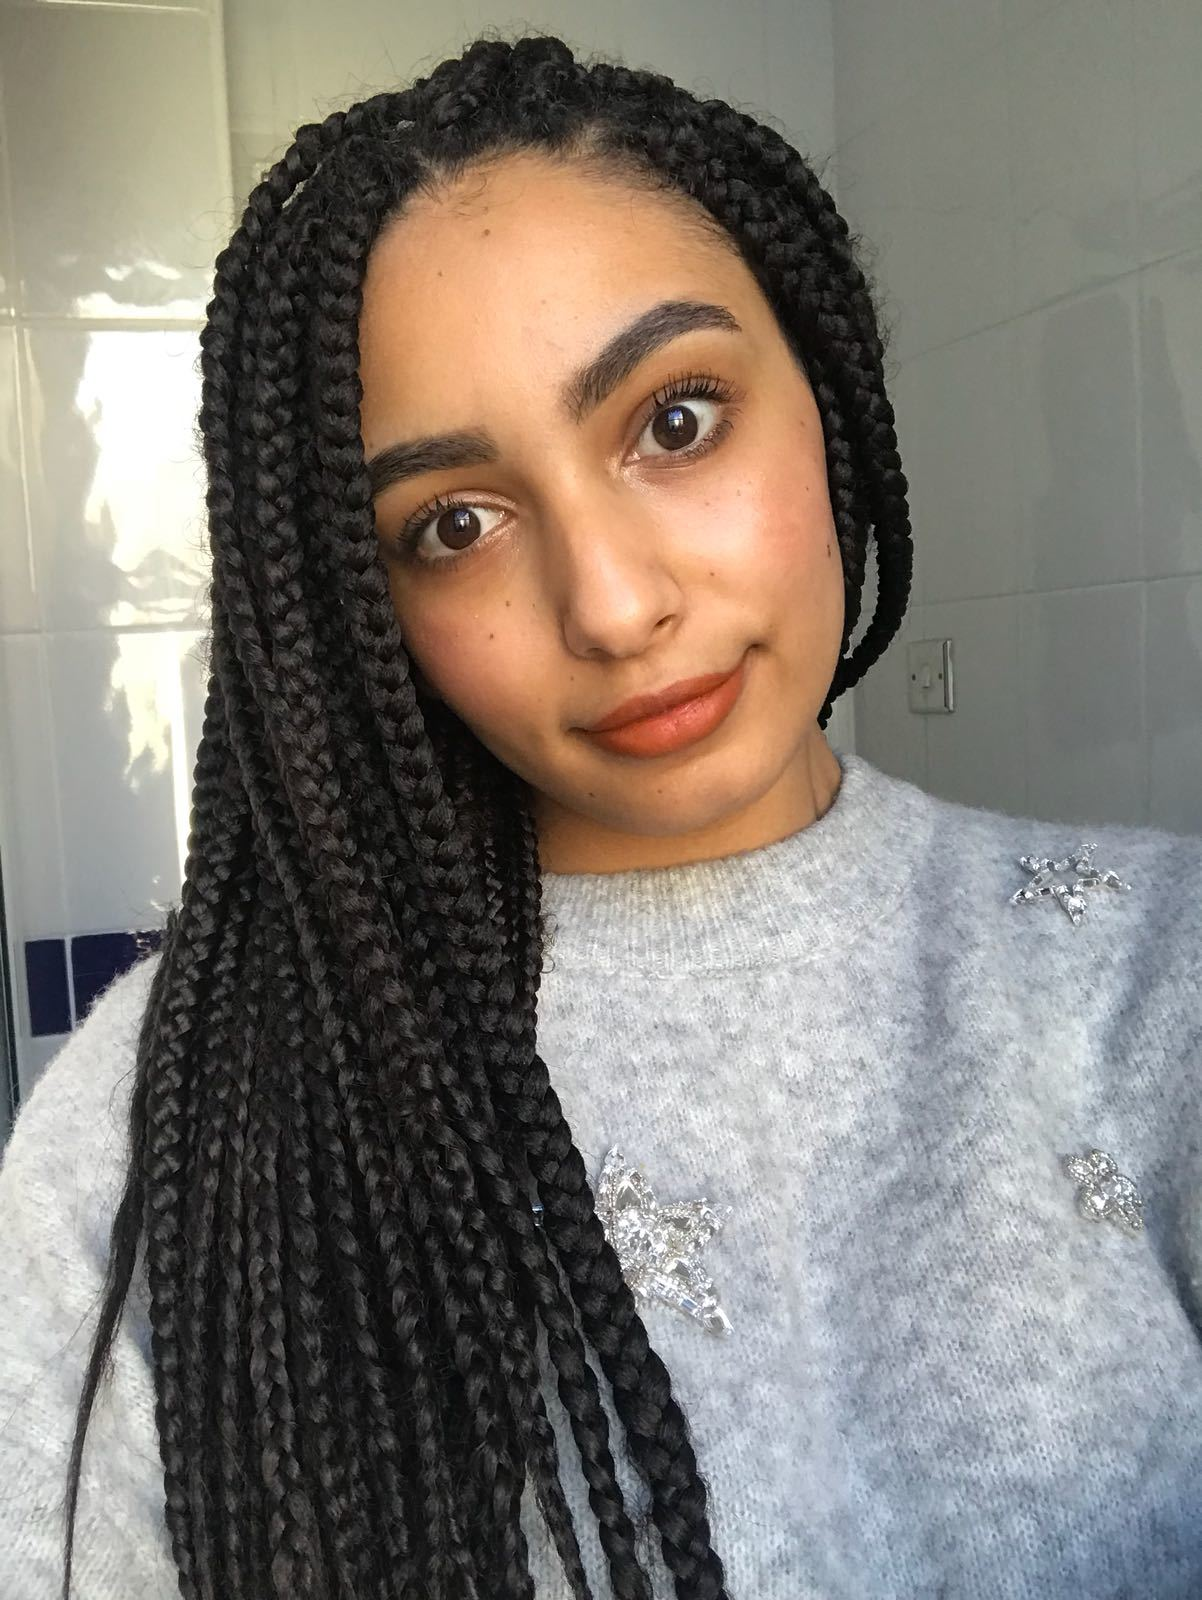 close up shot of woman with long box braids swept to the side, wearing grey jumper and posing